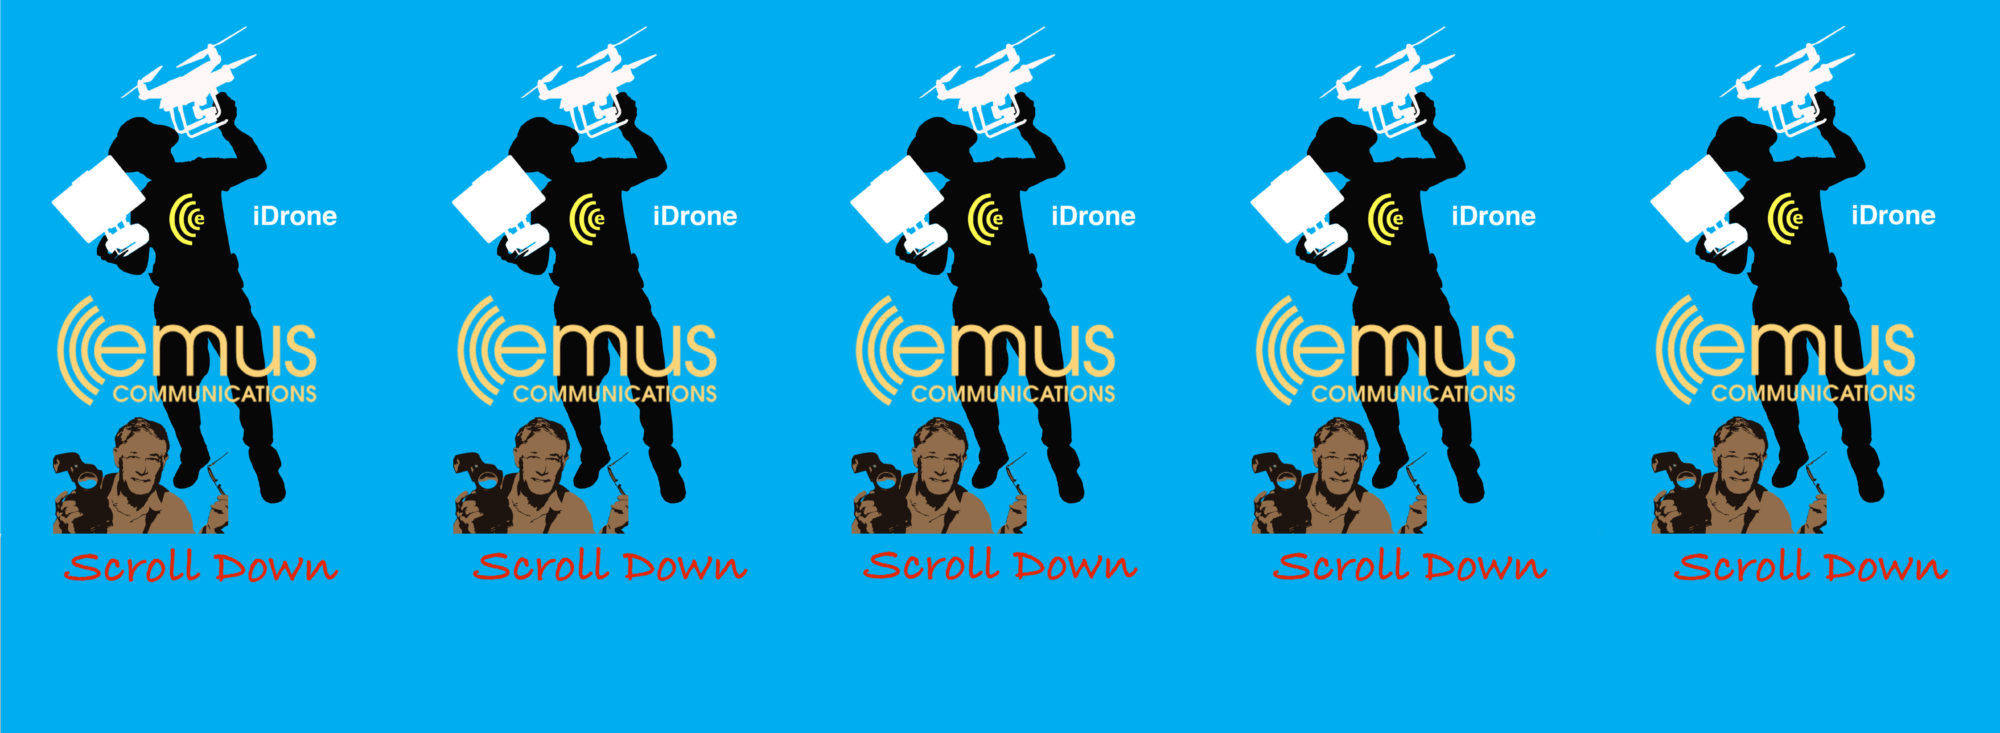 Emus Communications